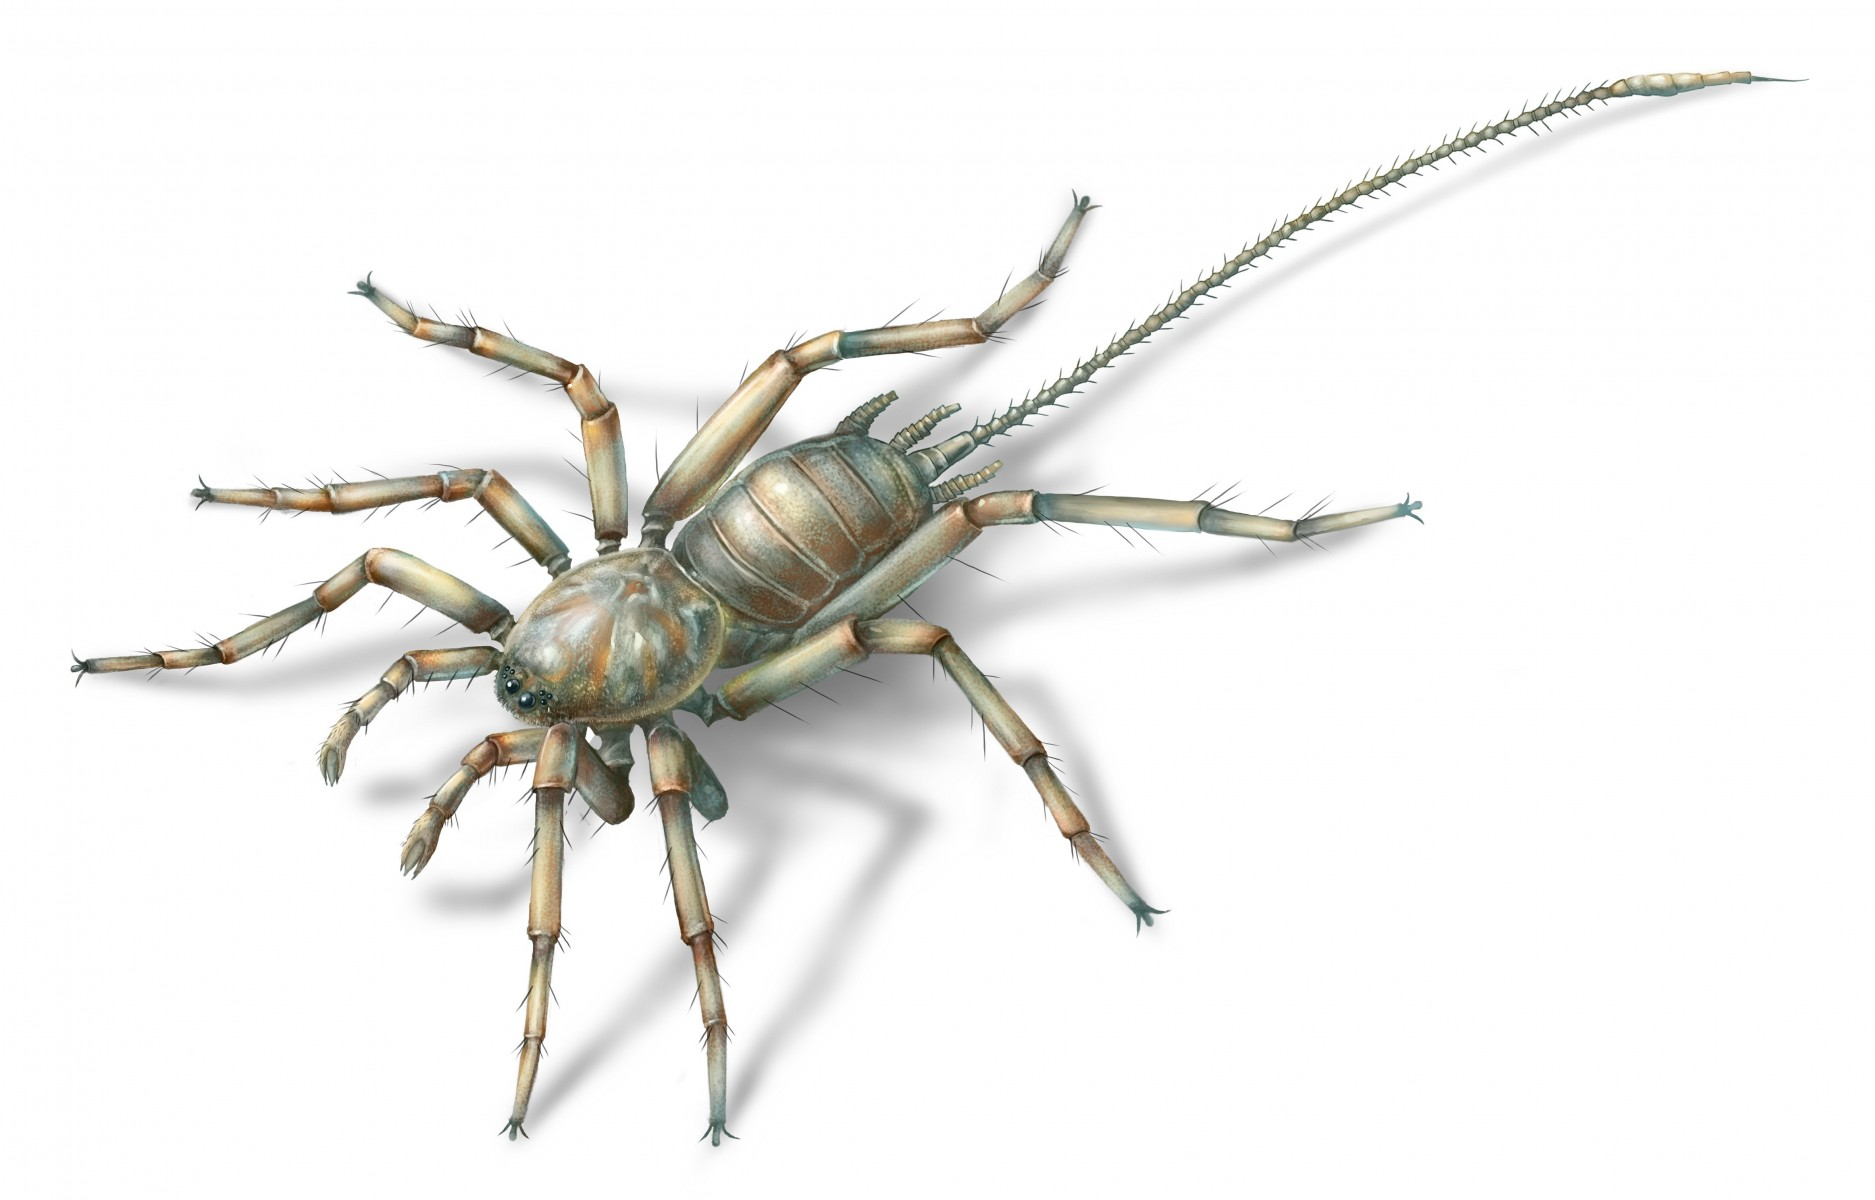 This ancient arachnid had a long, whippy tail